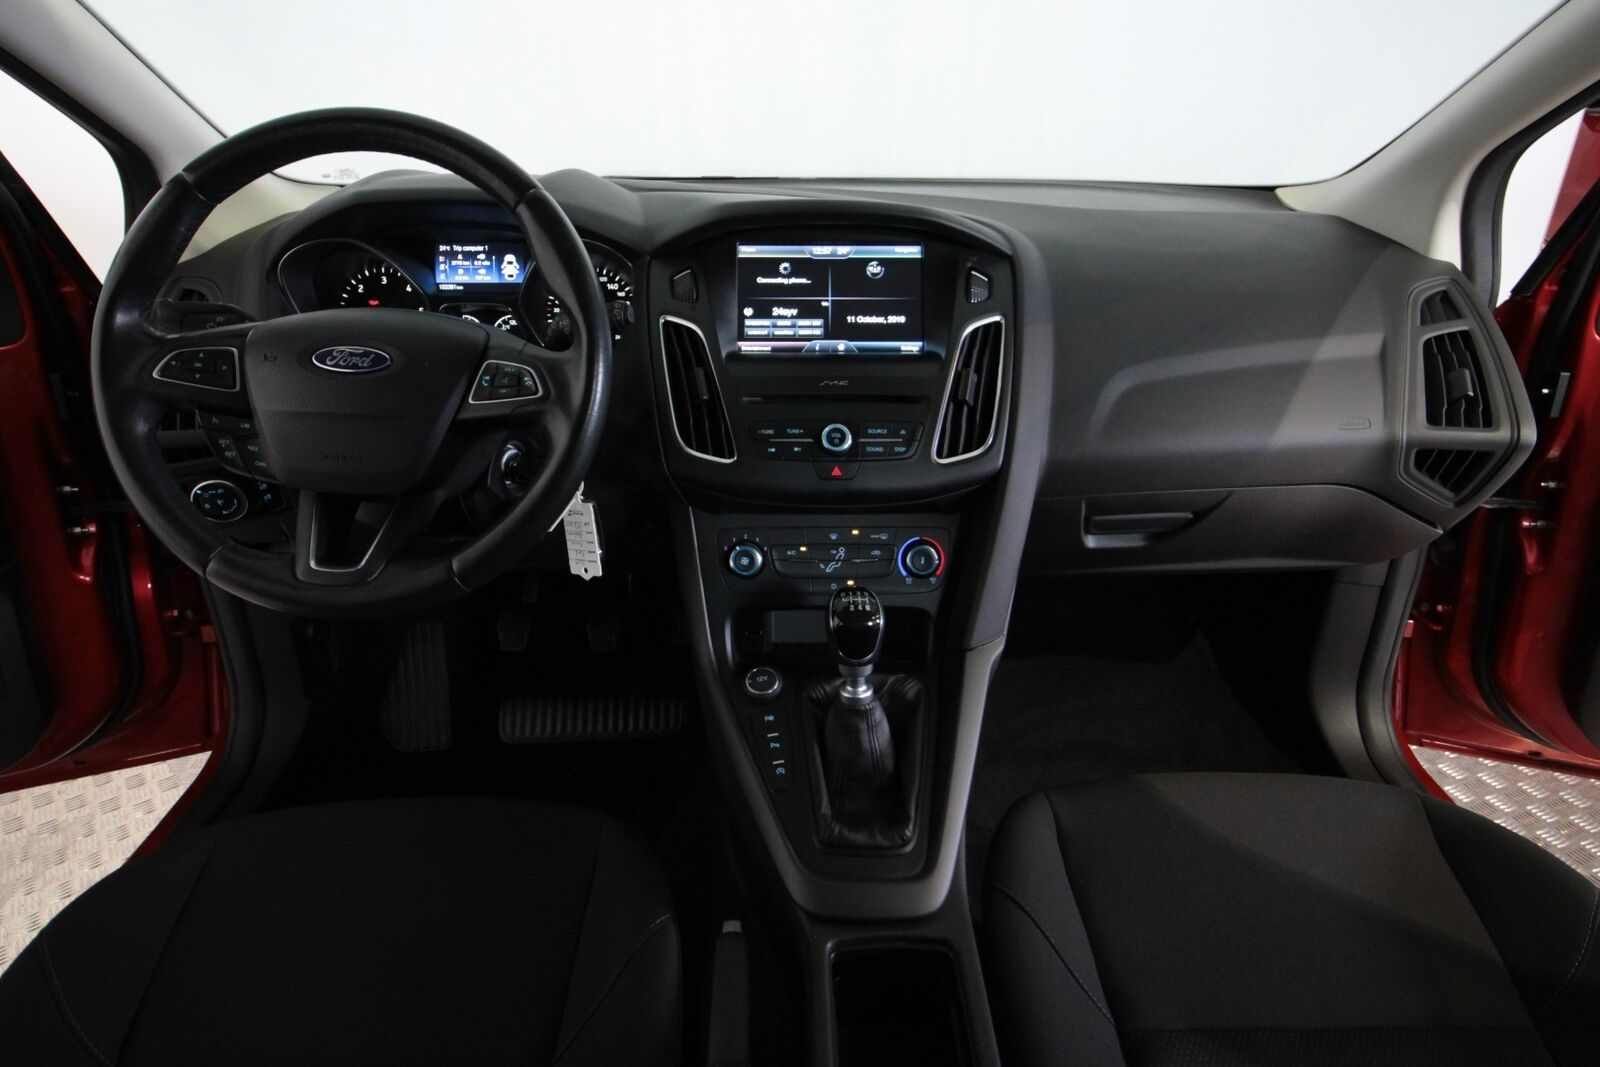 Ford Focus TDCi 105 Trend stc. ECO